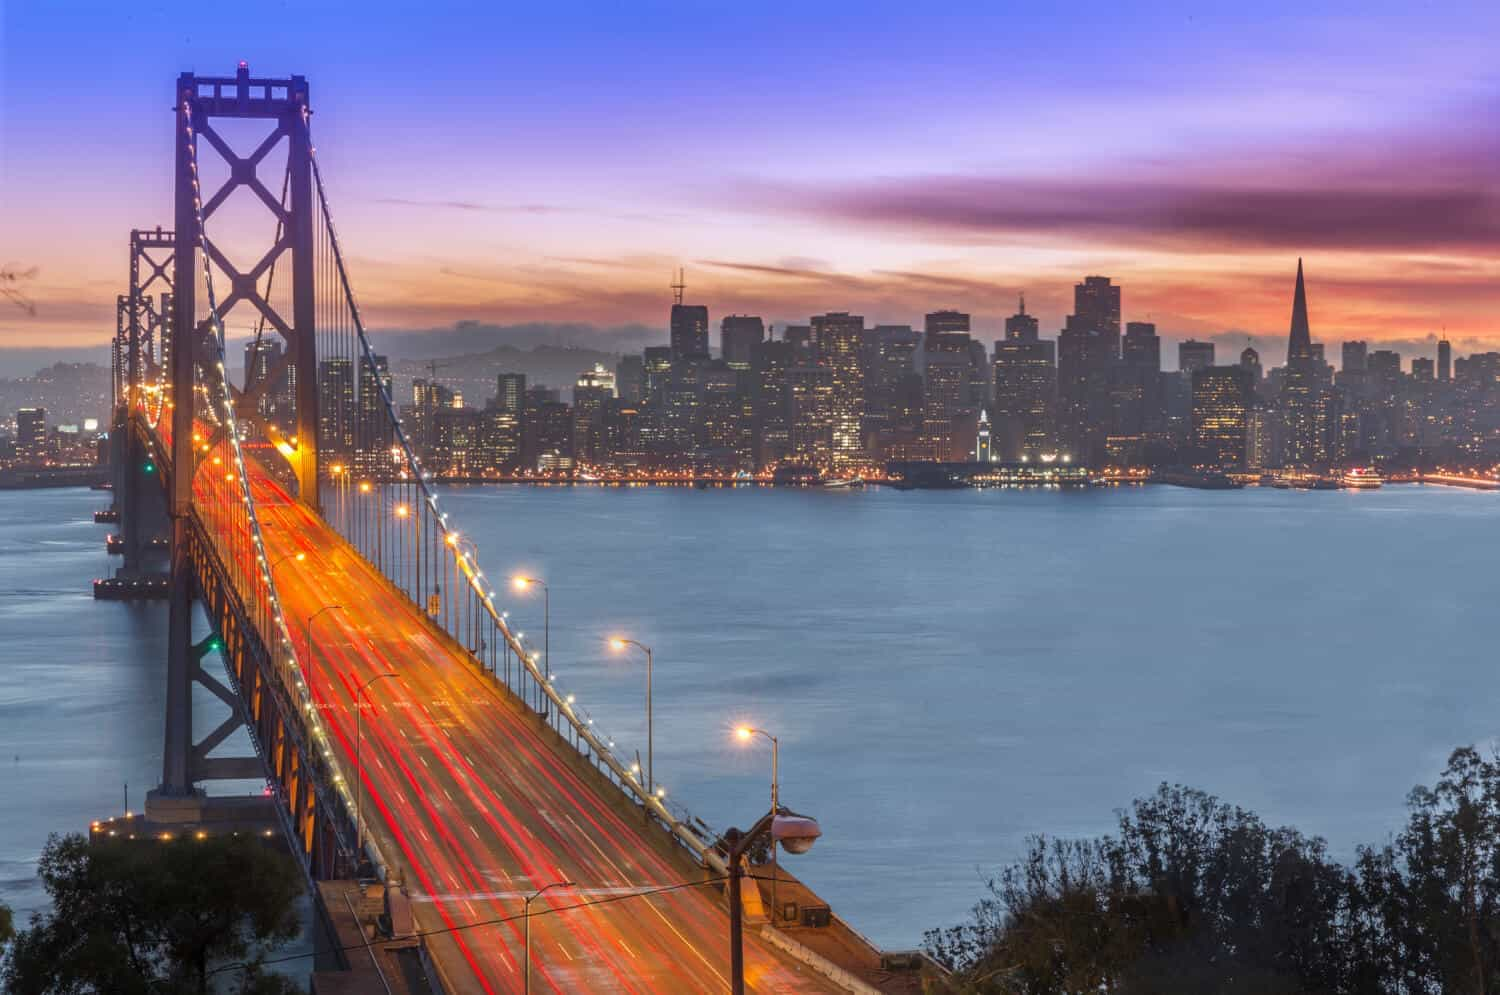 Golden Gate Bridge located in San Francisco, one of the worst places to save money